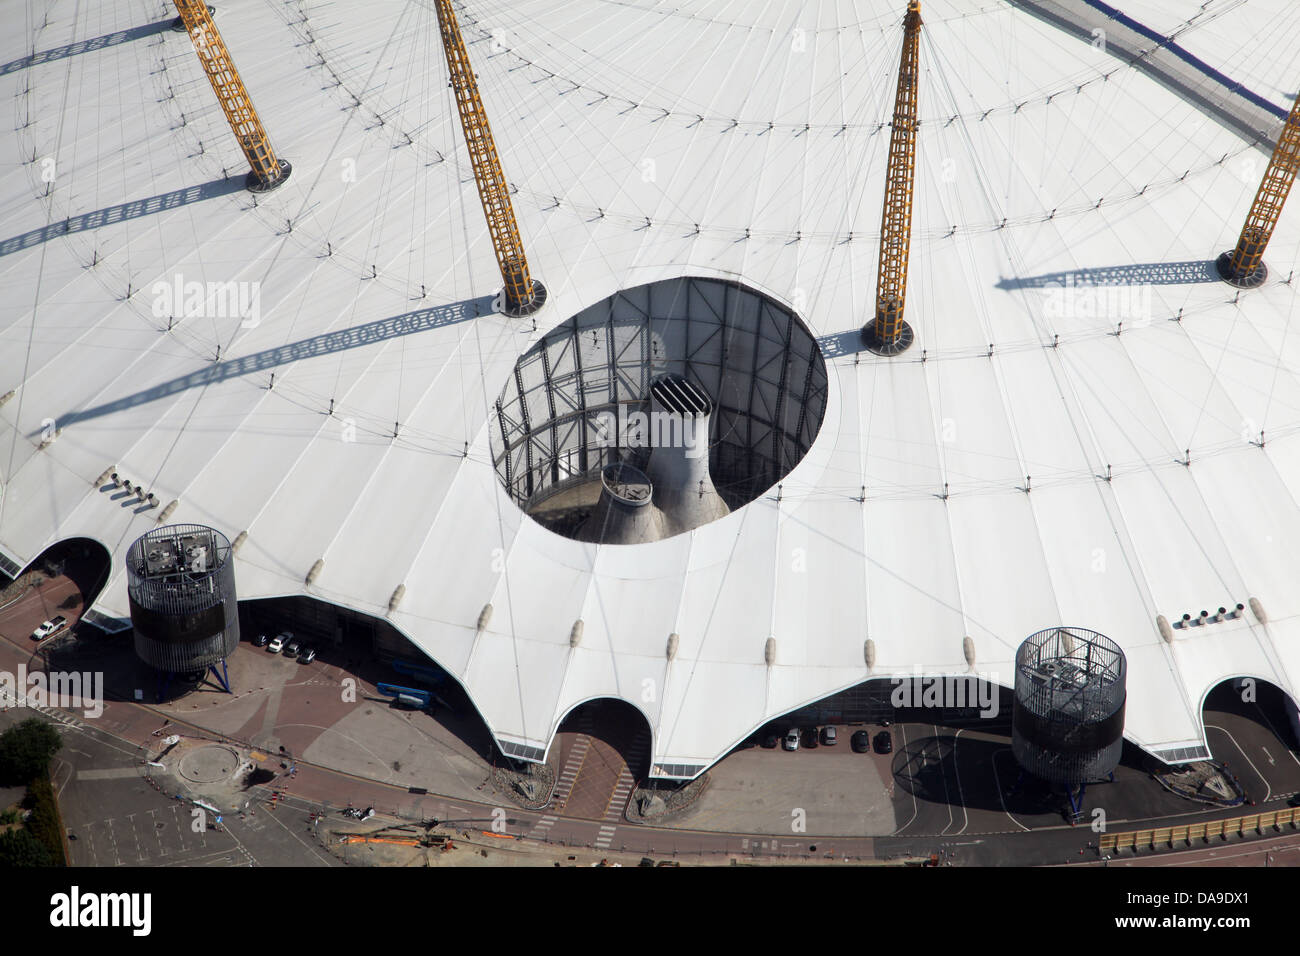 aerial view of part of the O2 Arena, Millennium Dome, London - Stock Image